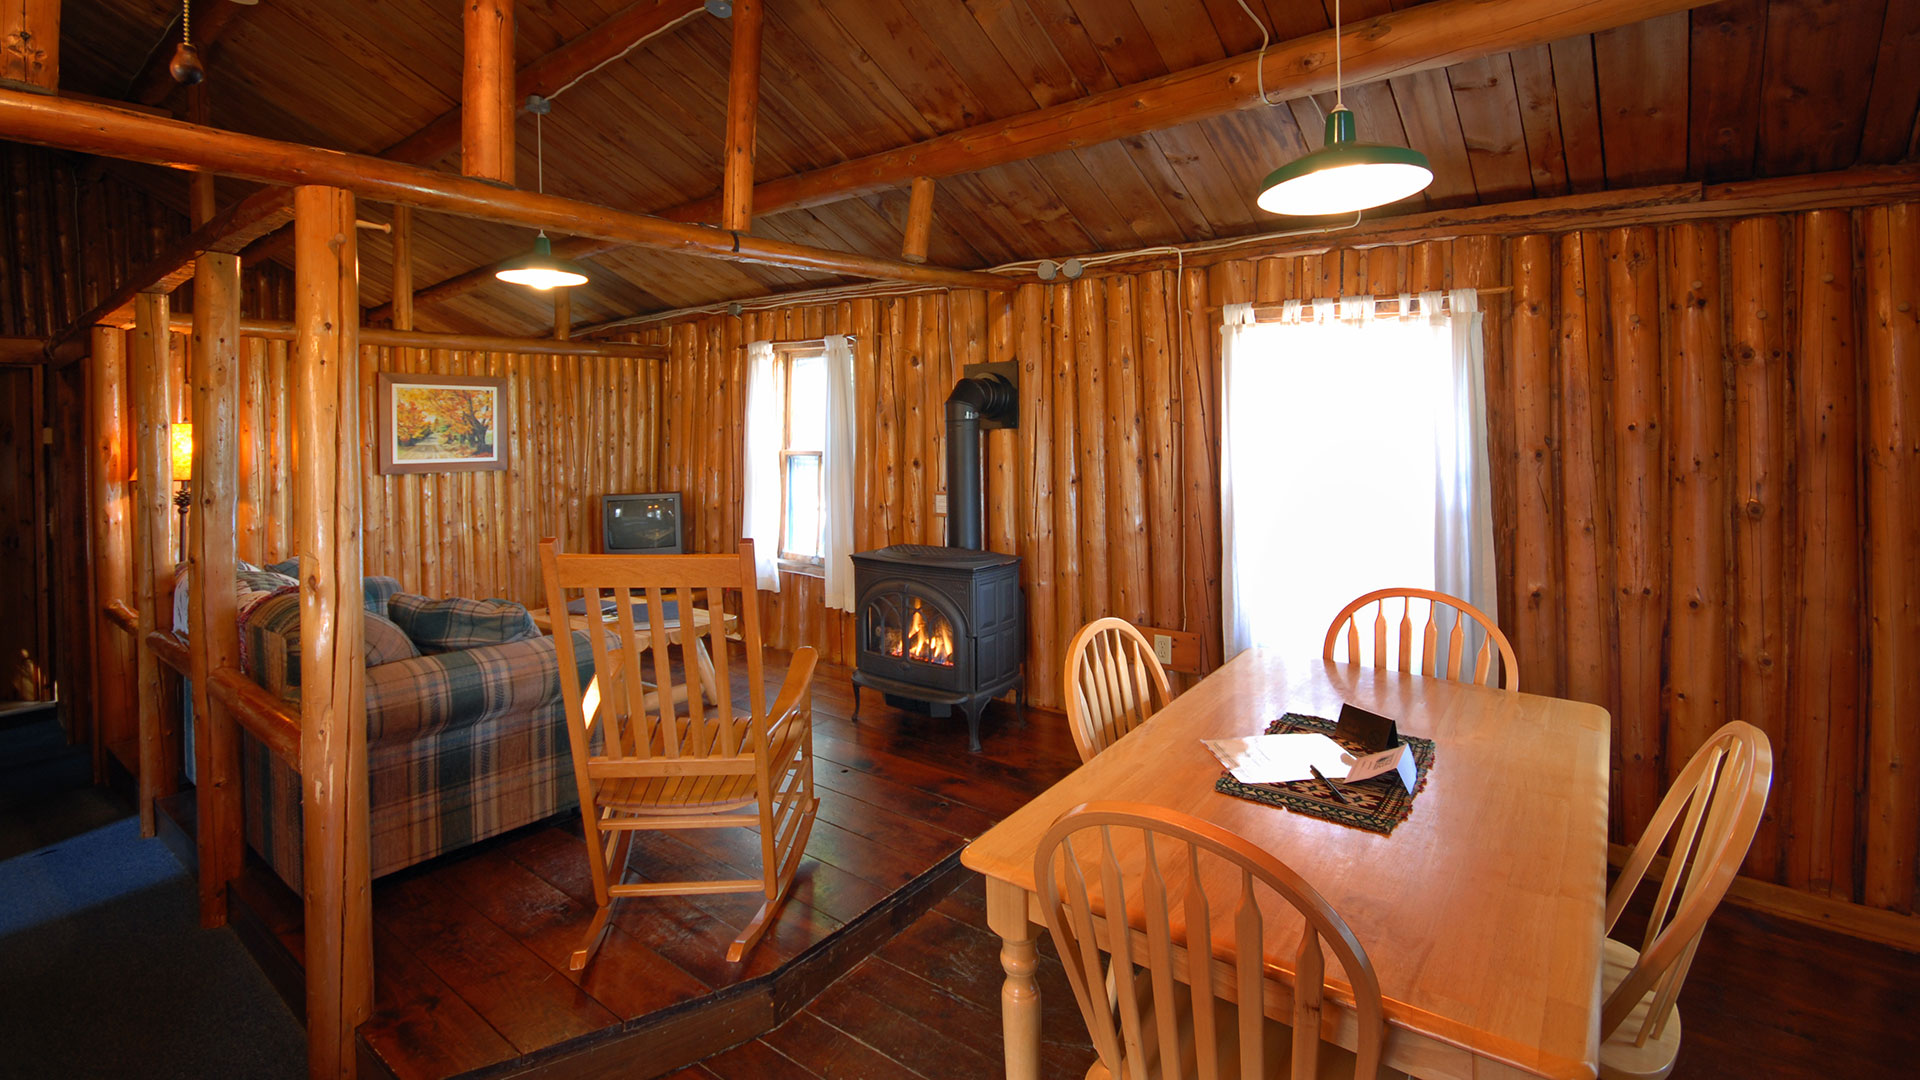 nh vermont in for today cabins winter stowe england getaways rent cozy cabin vt new travel